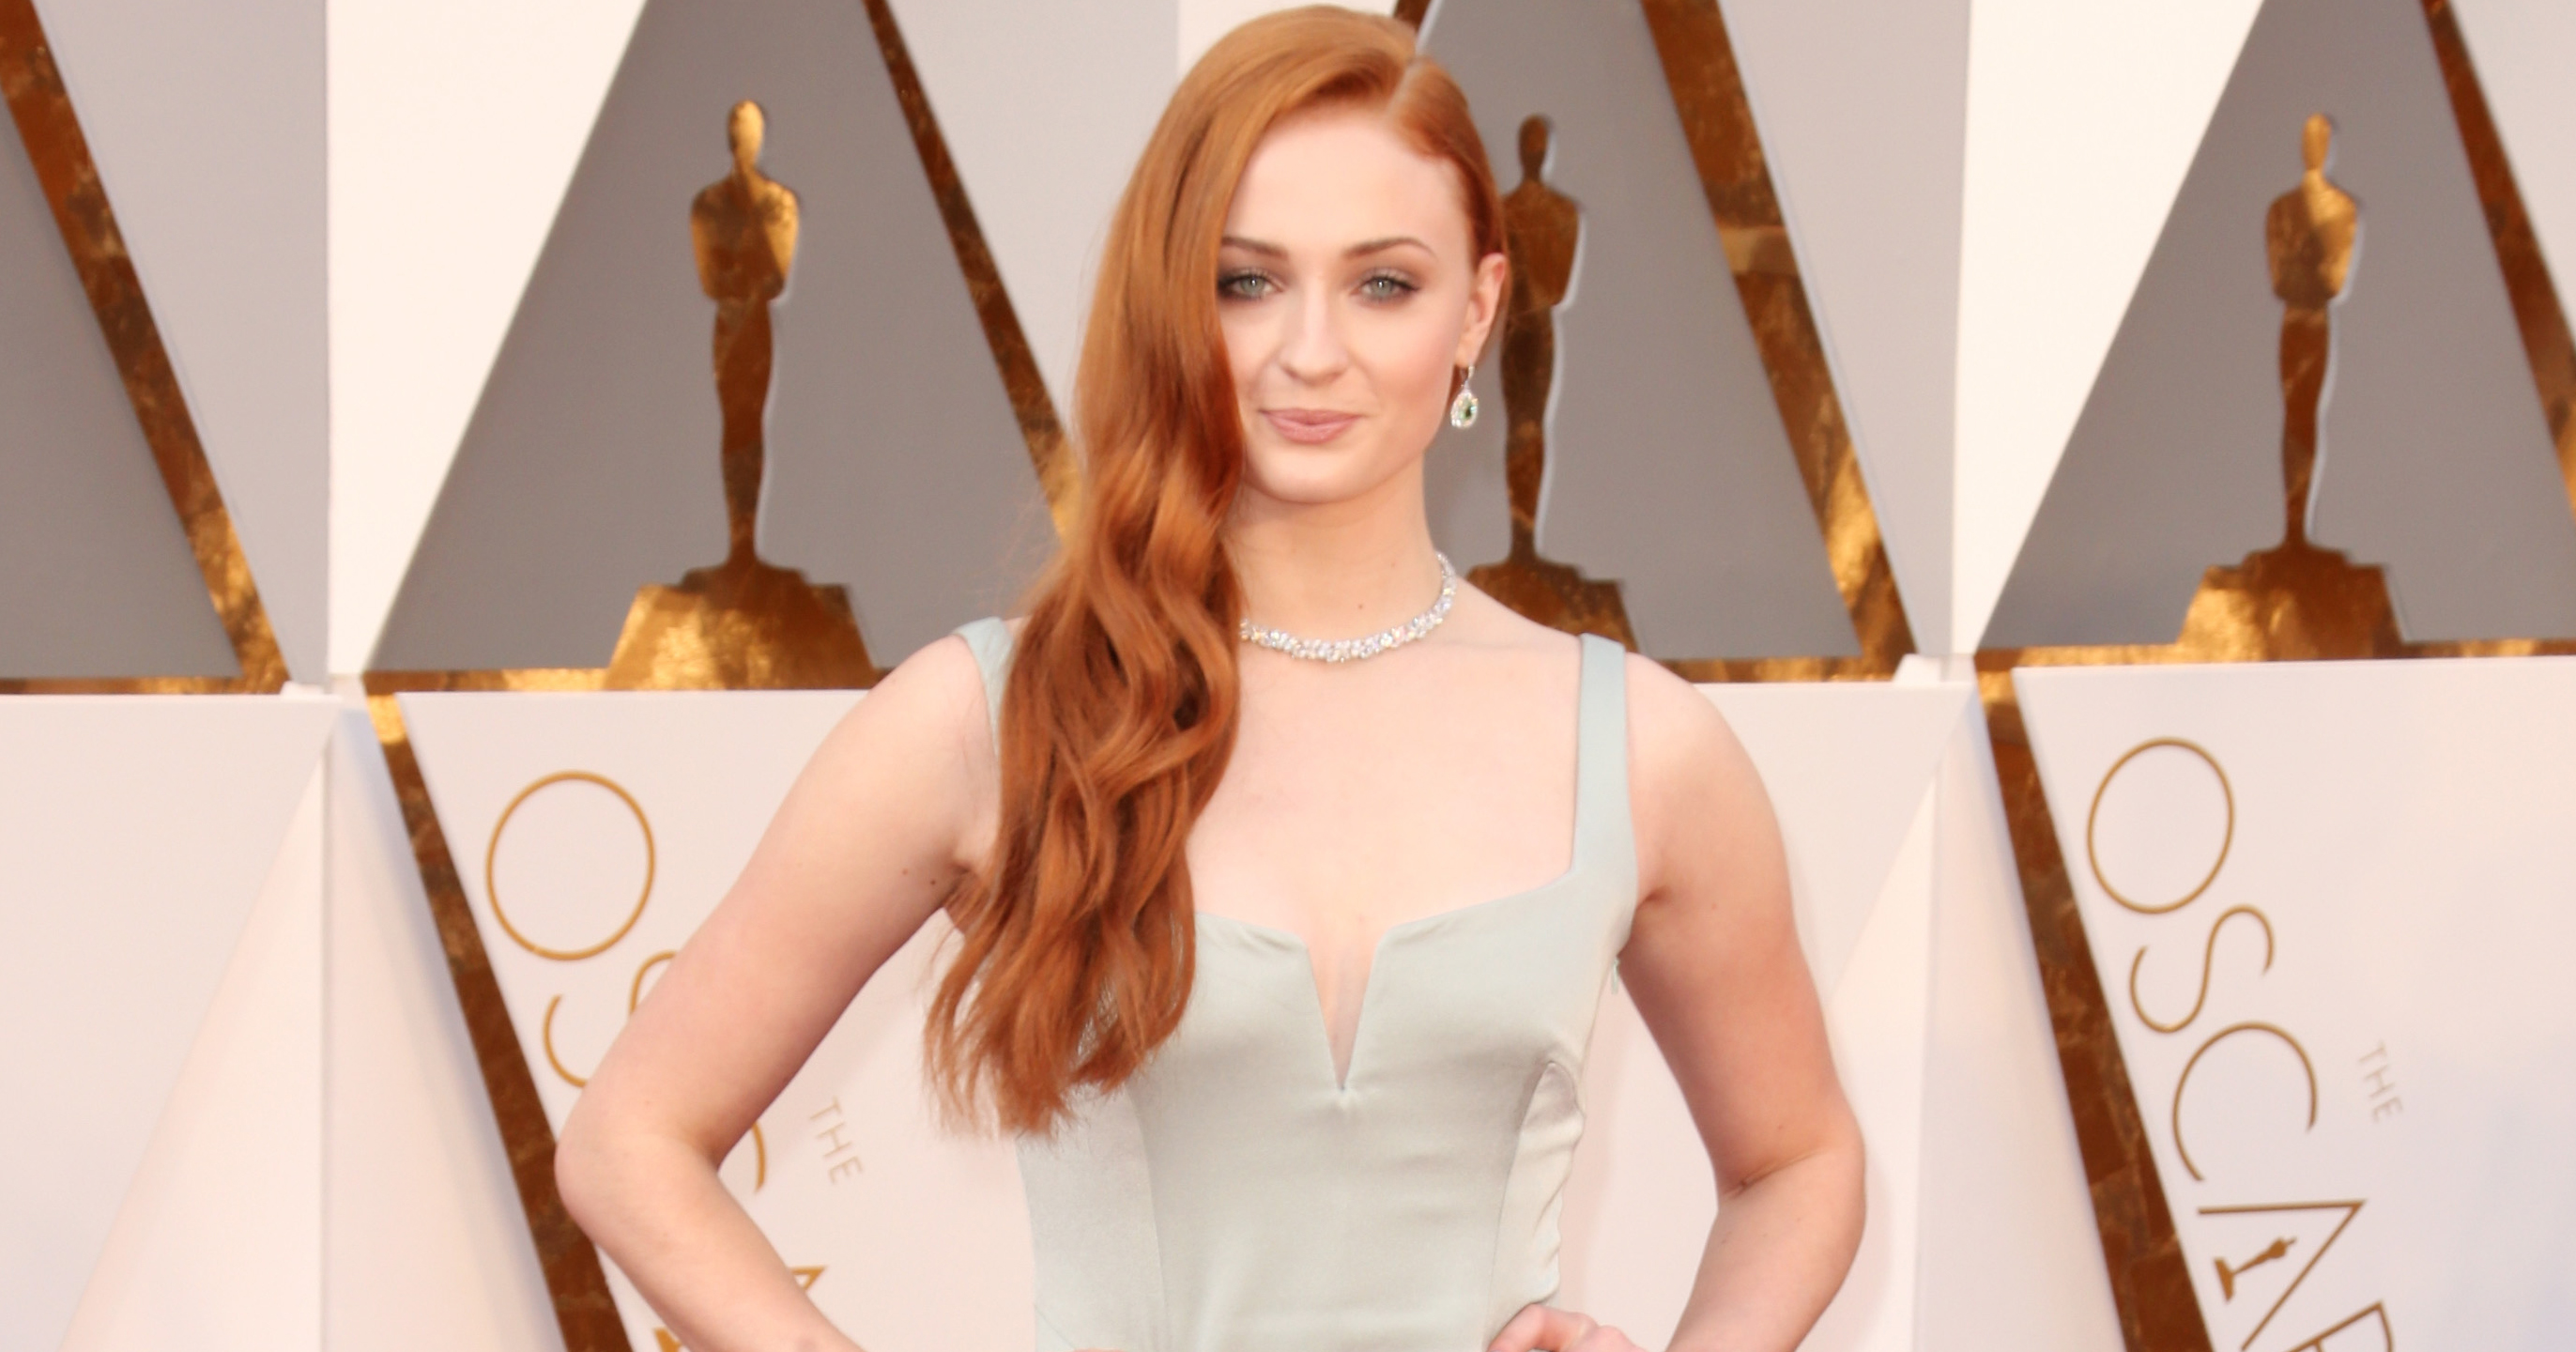 Sophie Turner attends the 88th Annual Academy Awards on Feb. 28, 2016 in Hollywood, Calif.